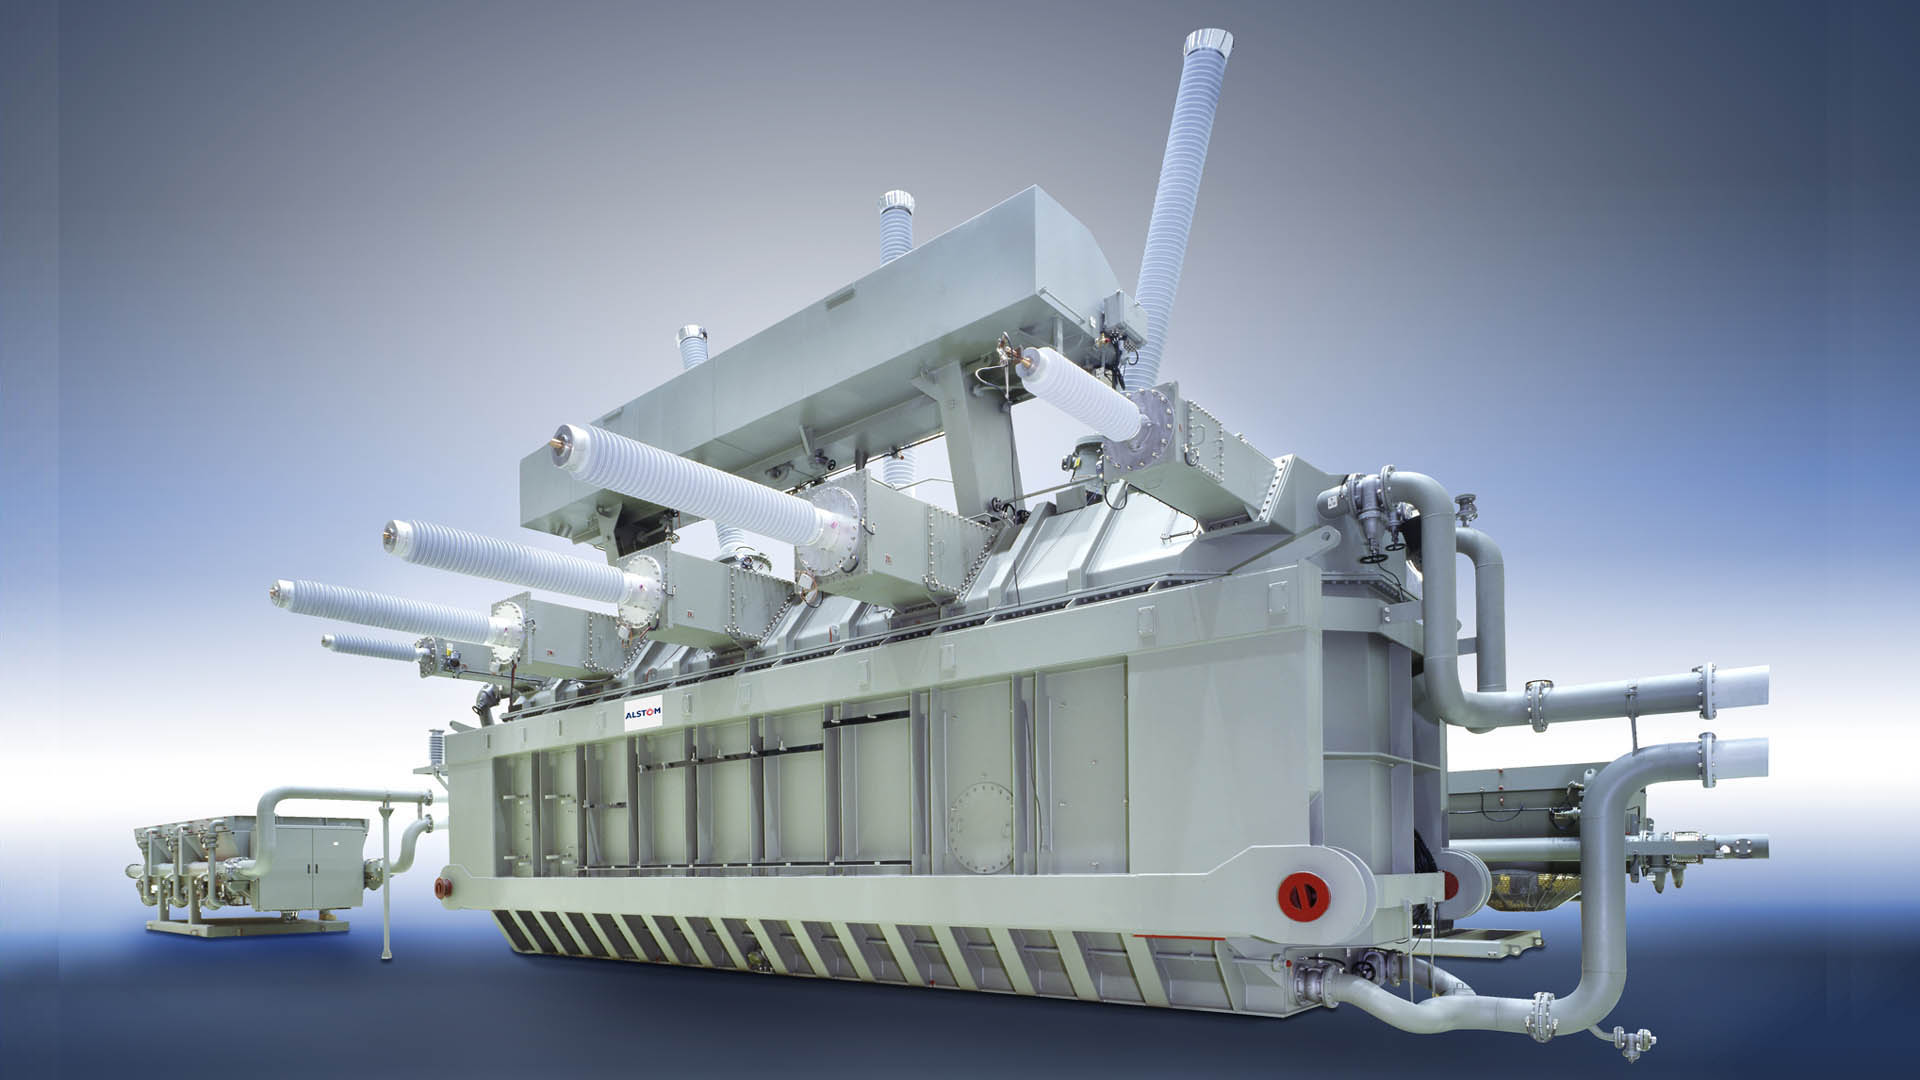 Heavyweight transformers for Amprion and TenneT